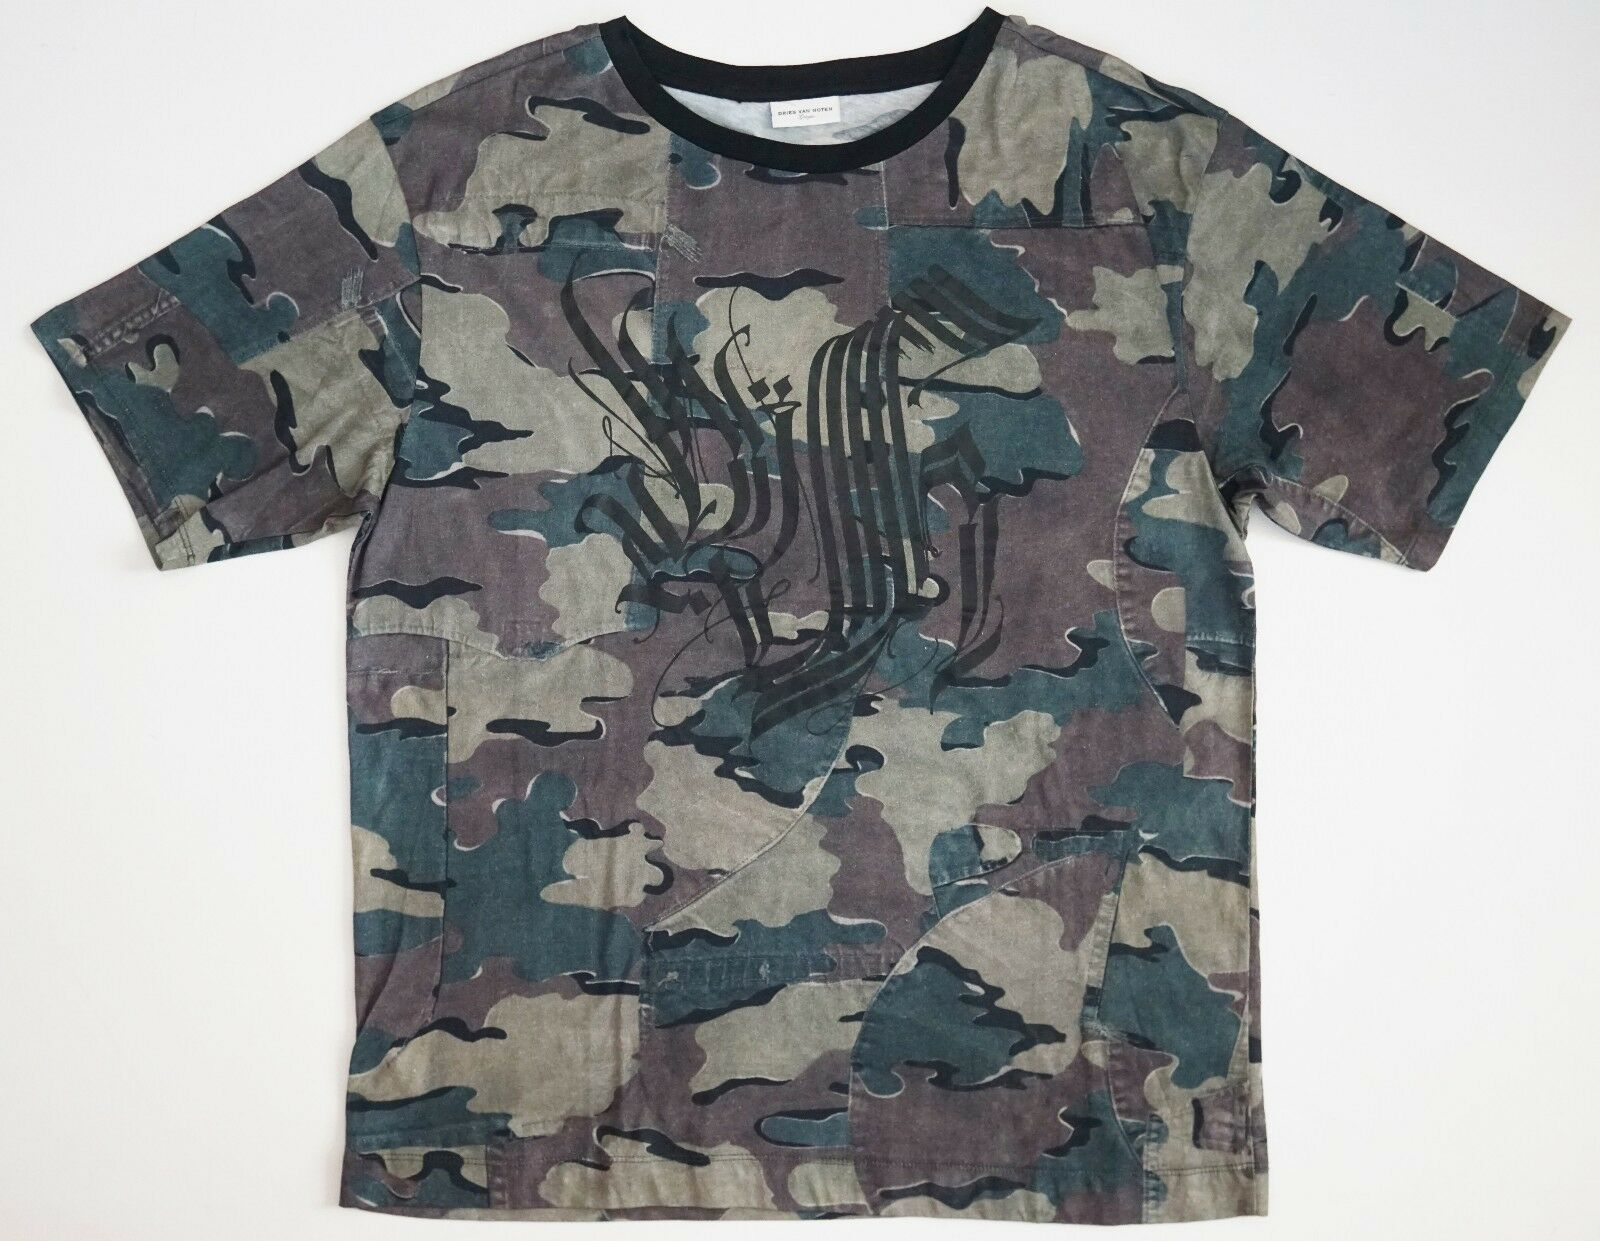 NWT Authentic DRIES VAN NOTEN CAMO Camouflage CREST Printed T-Shirt Tee S M L